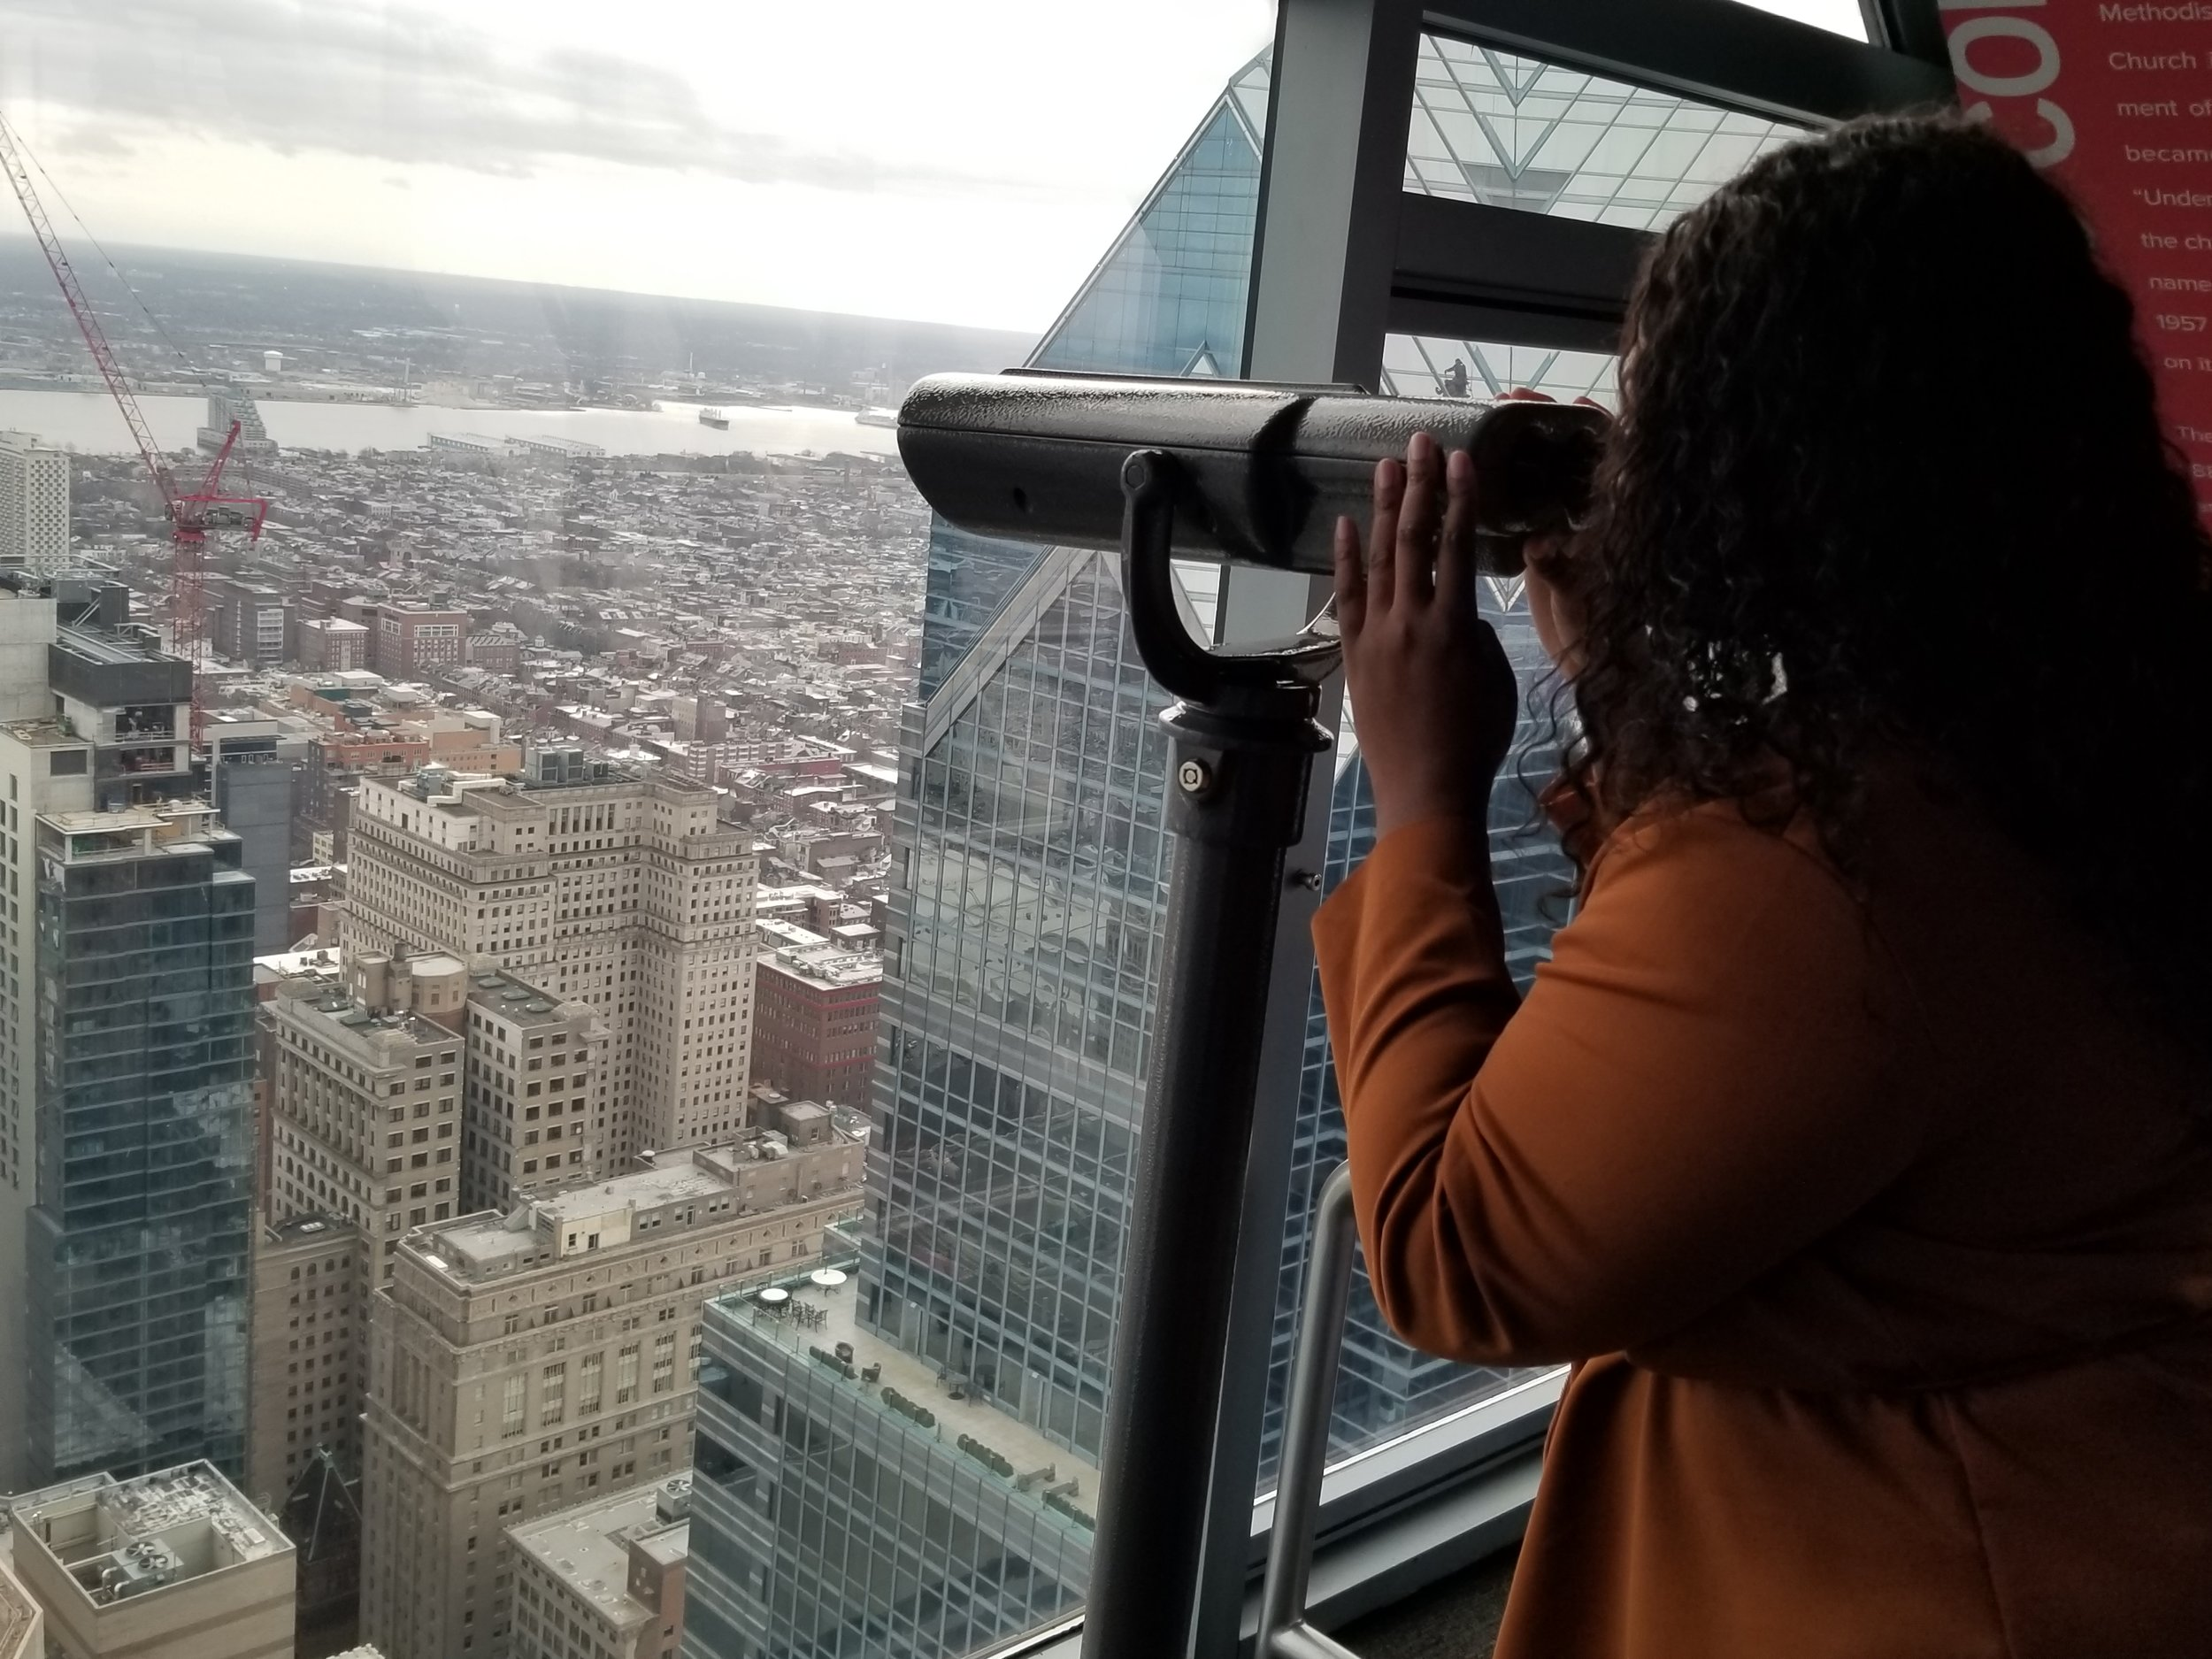 What better way to see Philadelphia than to see it from 57 floors up? As a person who is terrified of heights, it wasn't as scary as it looks. Included in your ticket is a guided tour available every hour that will give you more history and also point out some of the monuments from far up.